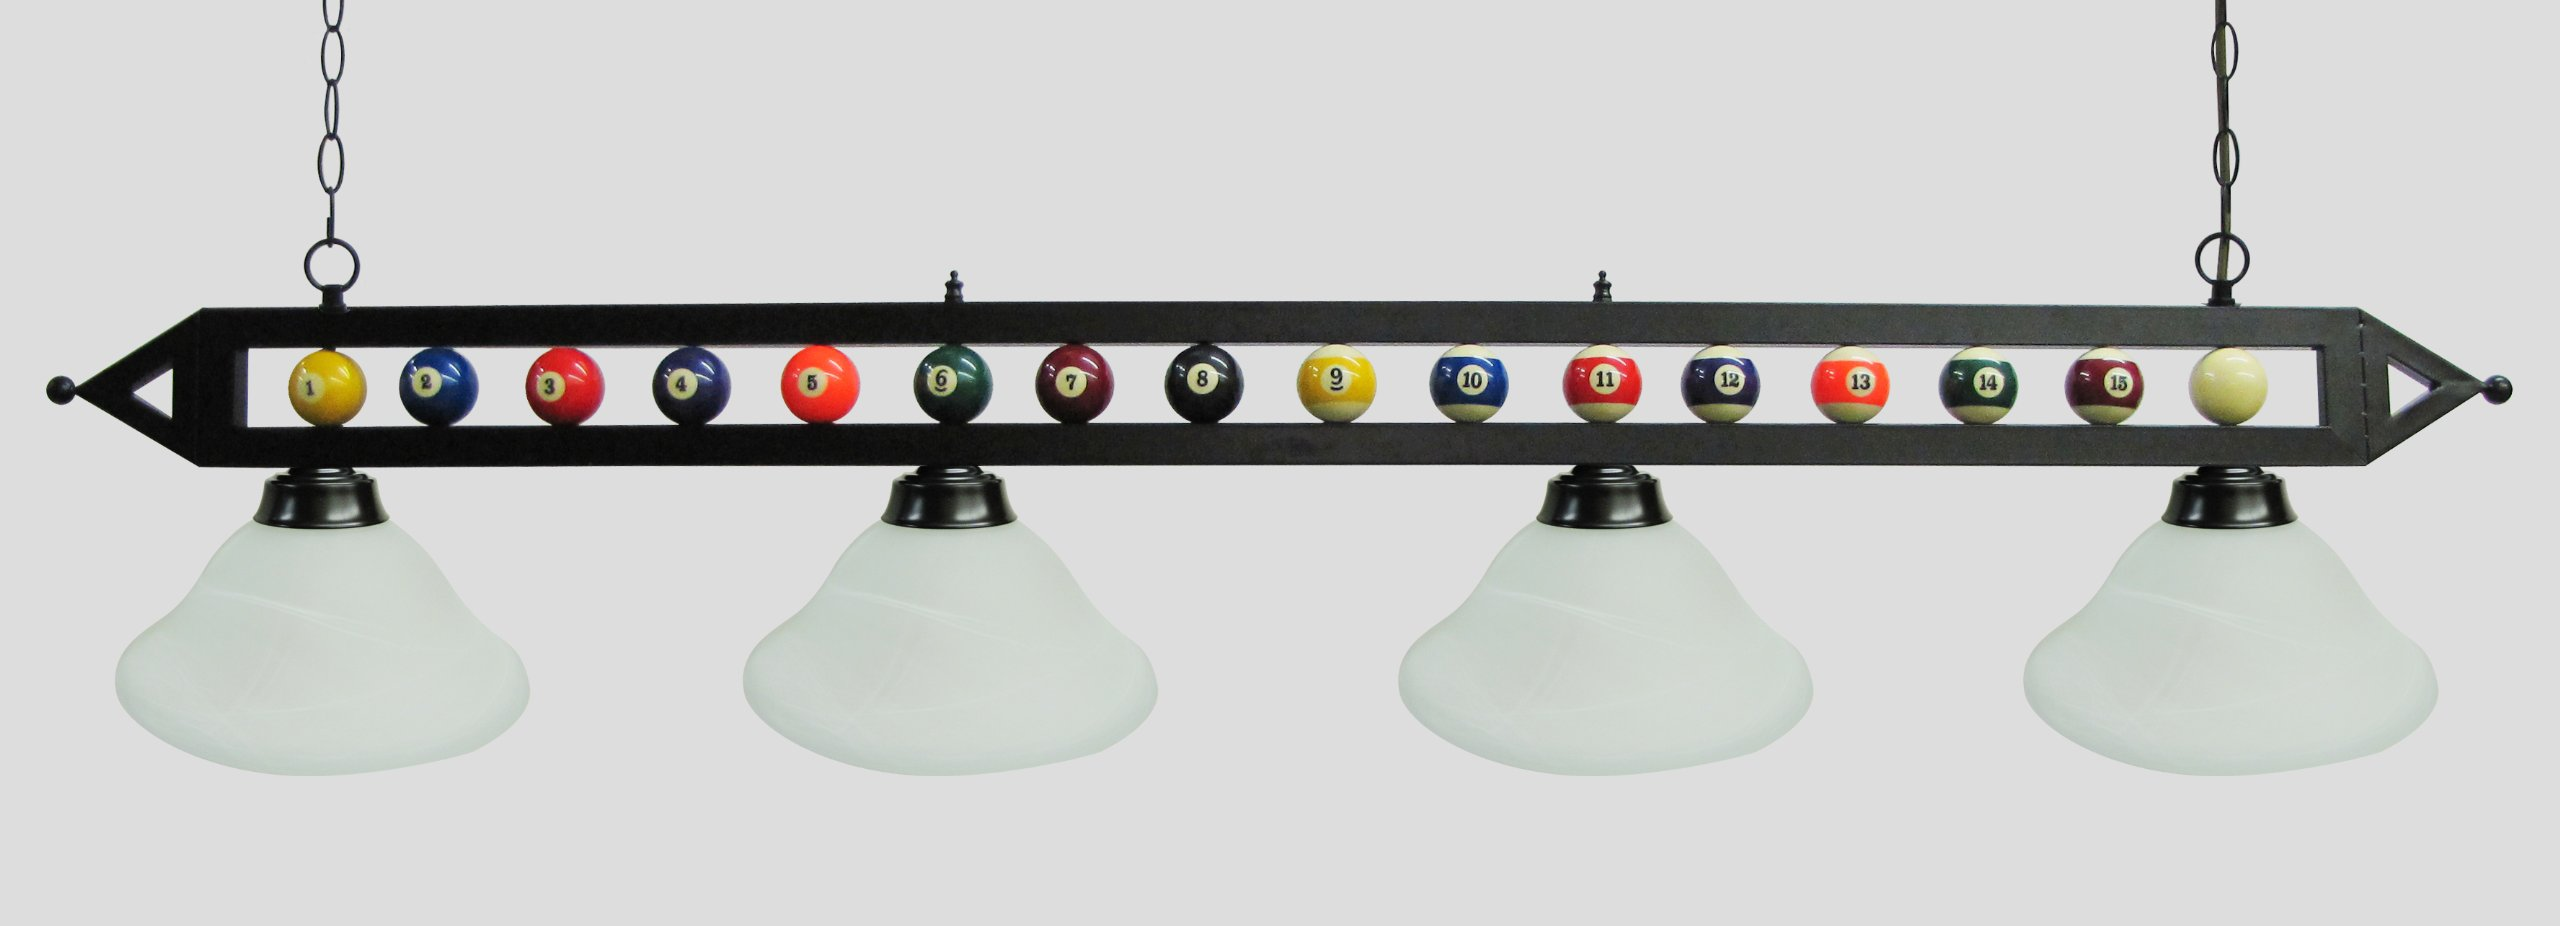 72'' Black Metal Ball Design Pool Table Light Billiard Lamp Choose Black, Red, Green Metal Shades or White Glass (White Glass Shades)